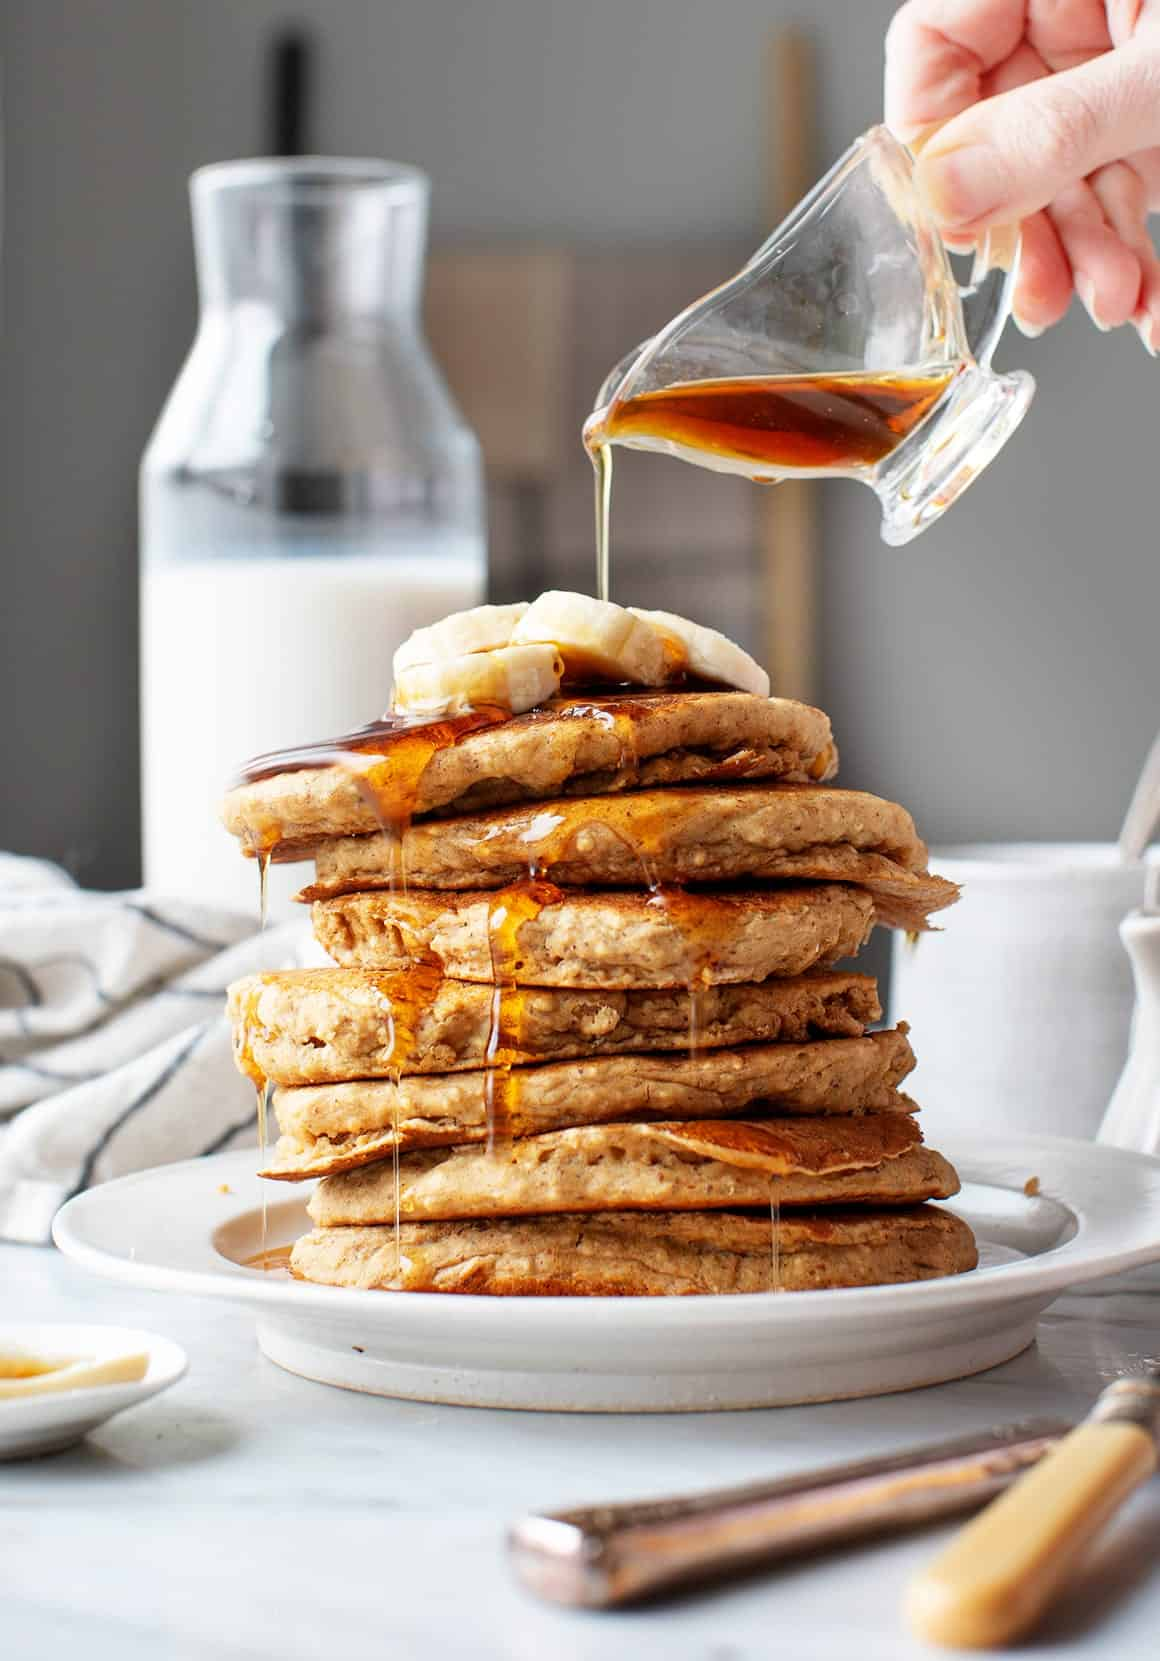 Vegan banana pancakes on a plate with maple syrup